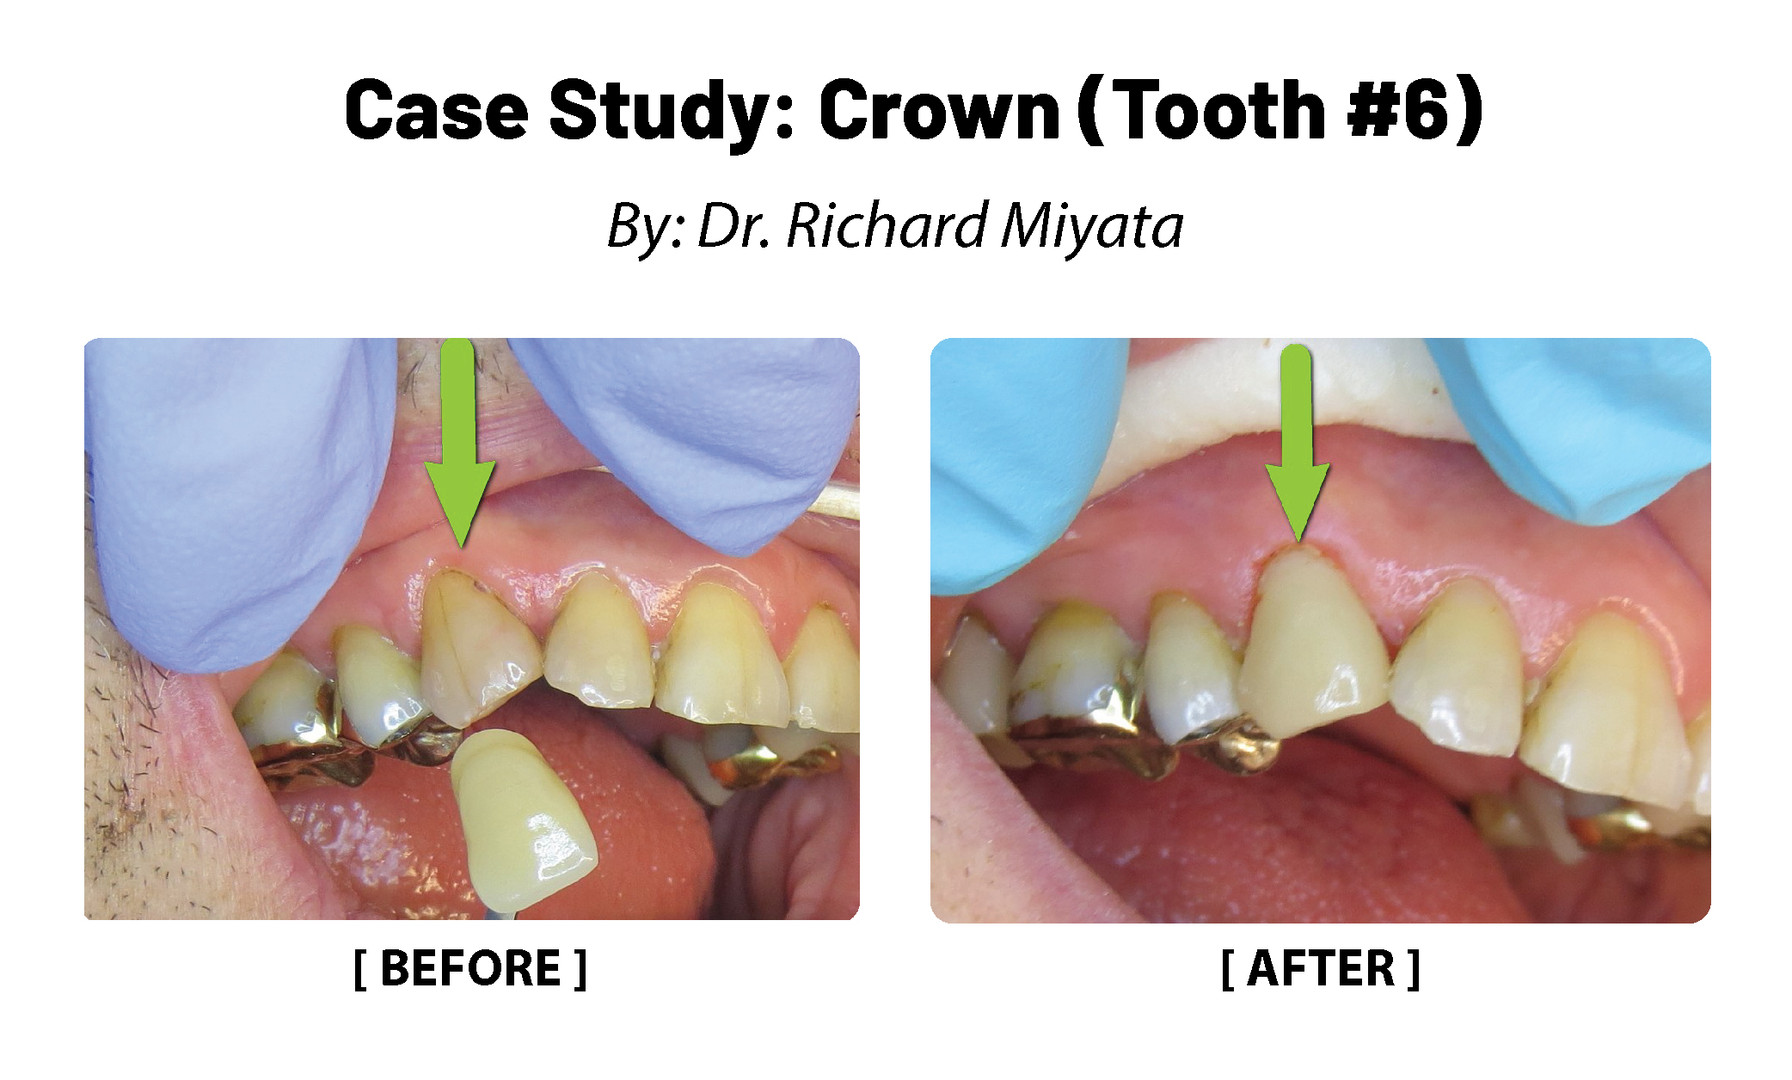 Case Study: Crown (Tooth #6)